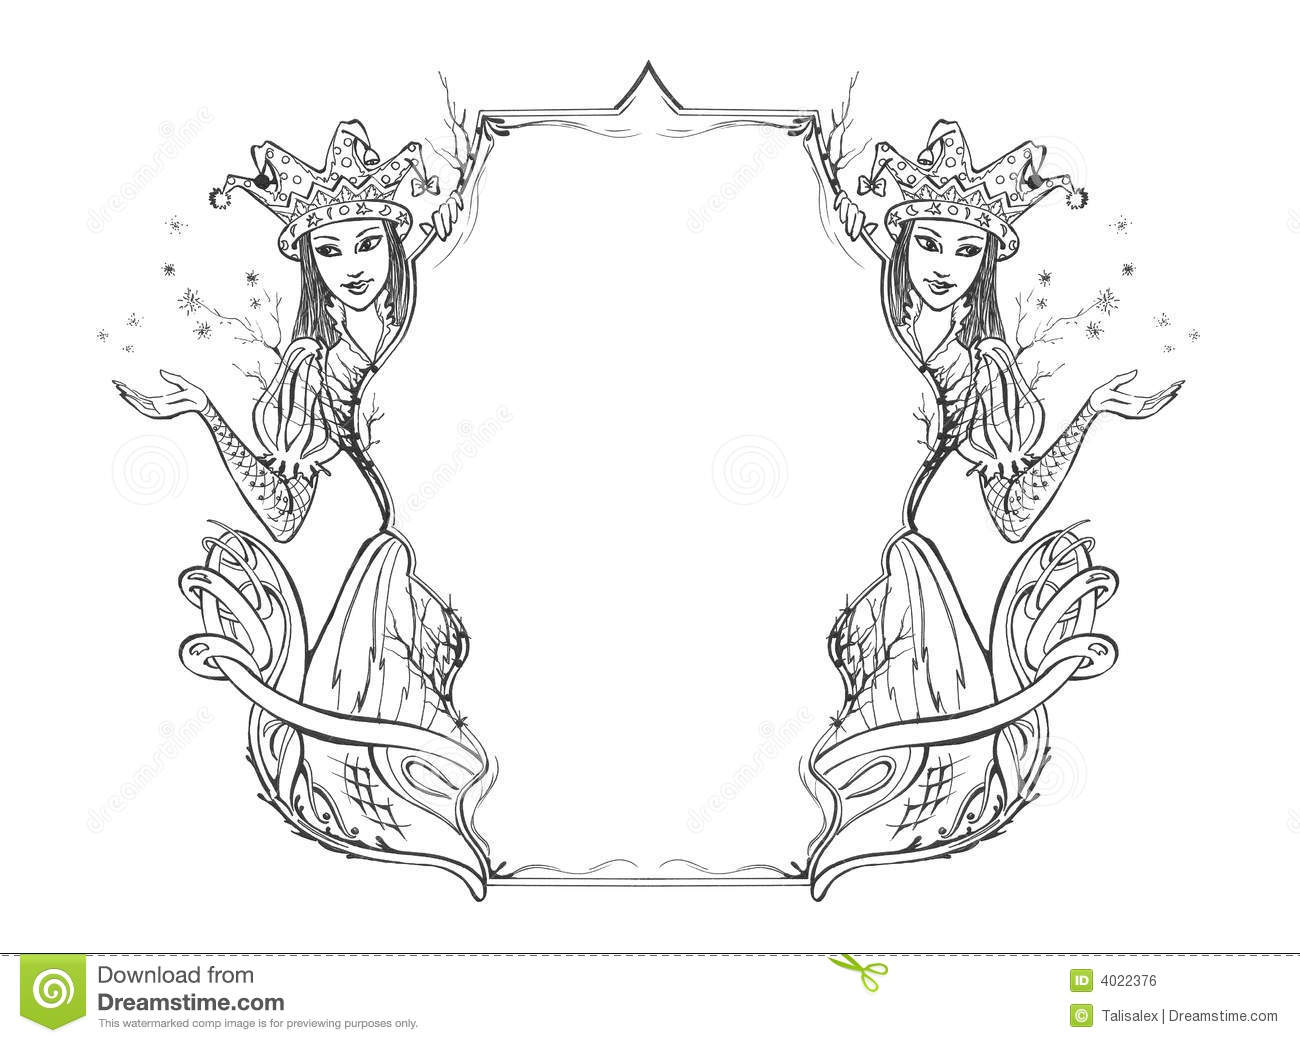 Dragon Pictures To Print further Viviendas Para Colorear also Perpective Grid Cept Its Wrong 252018929 also Marisol Monday Paper Dolls In Black And White as well Remembrance 3 Coloring Pages. on paper castle template